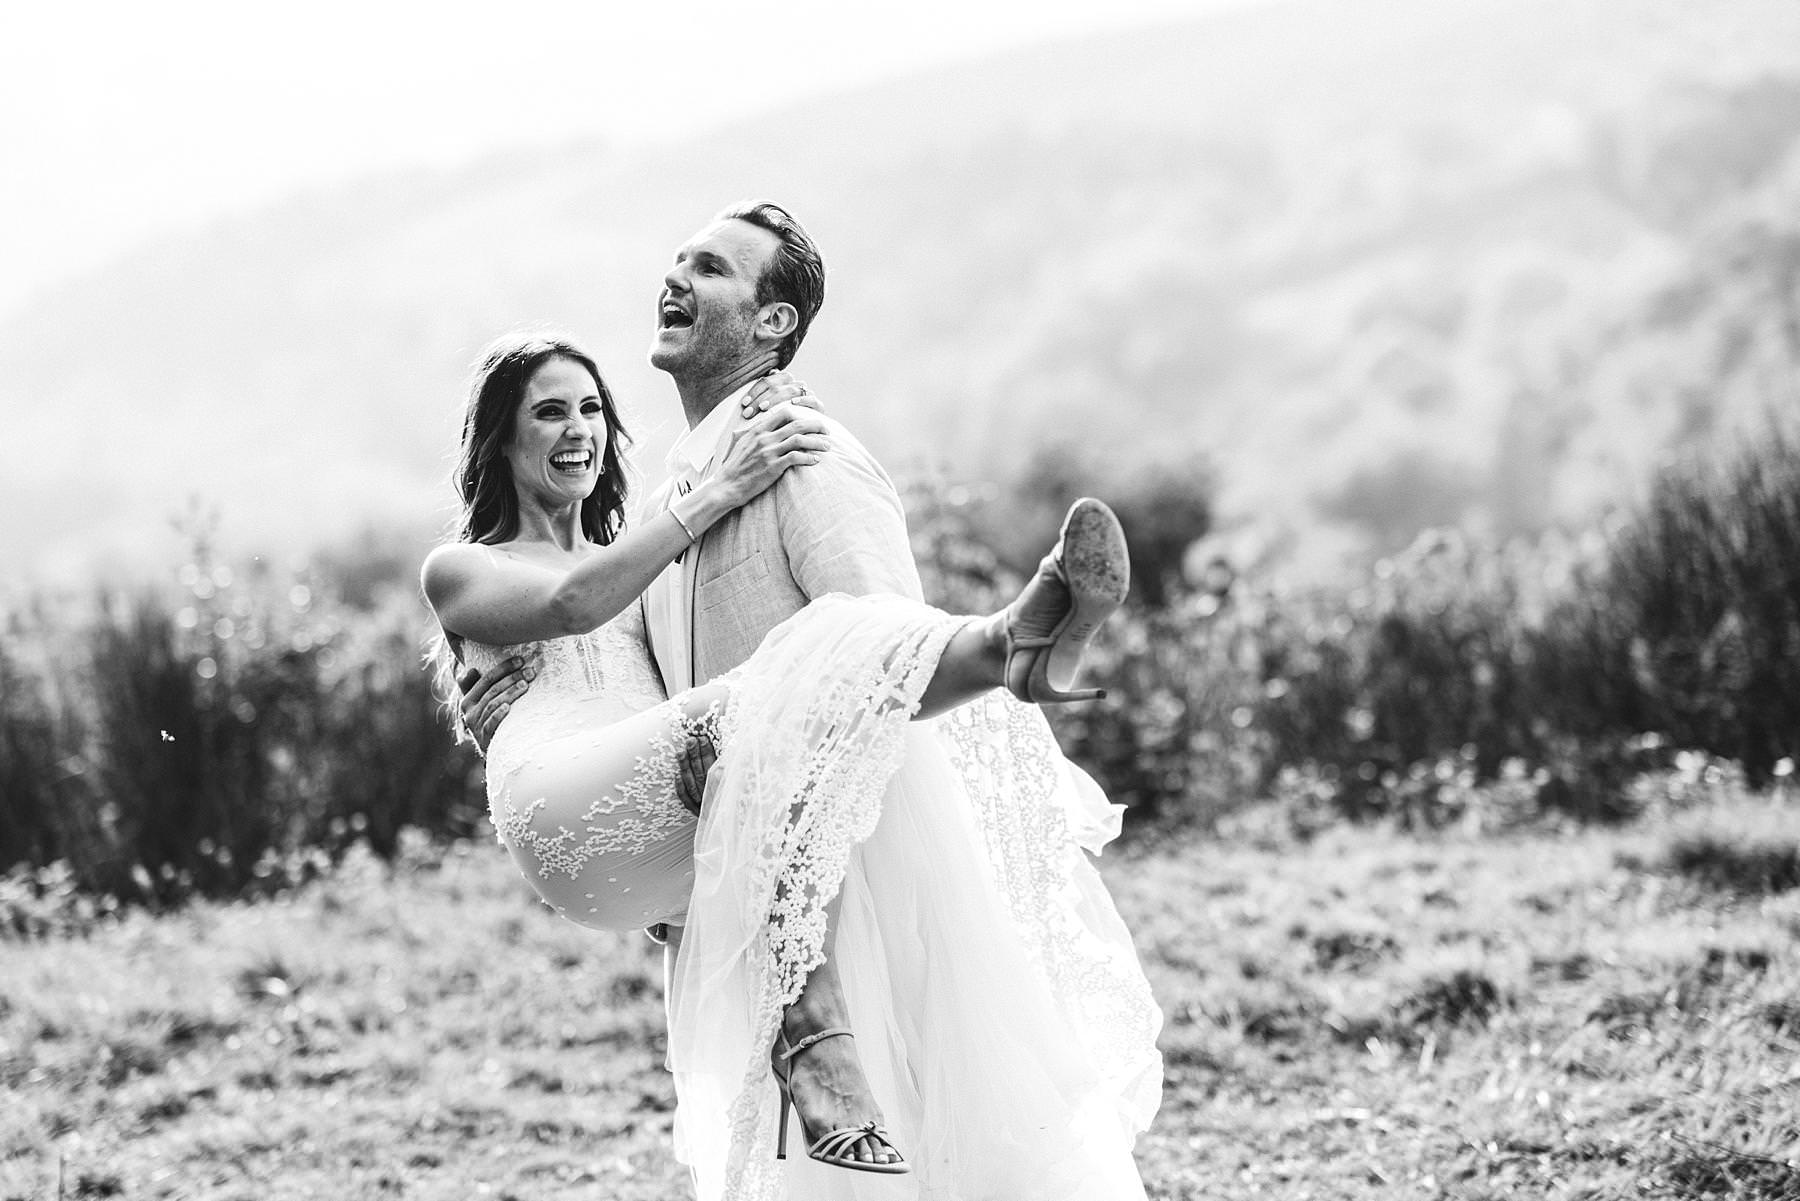 Lovely genuine moment of bride and groom in the vineyard of Chianti near historic residence of Villa Il Poggiale